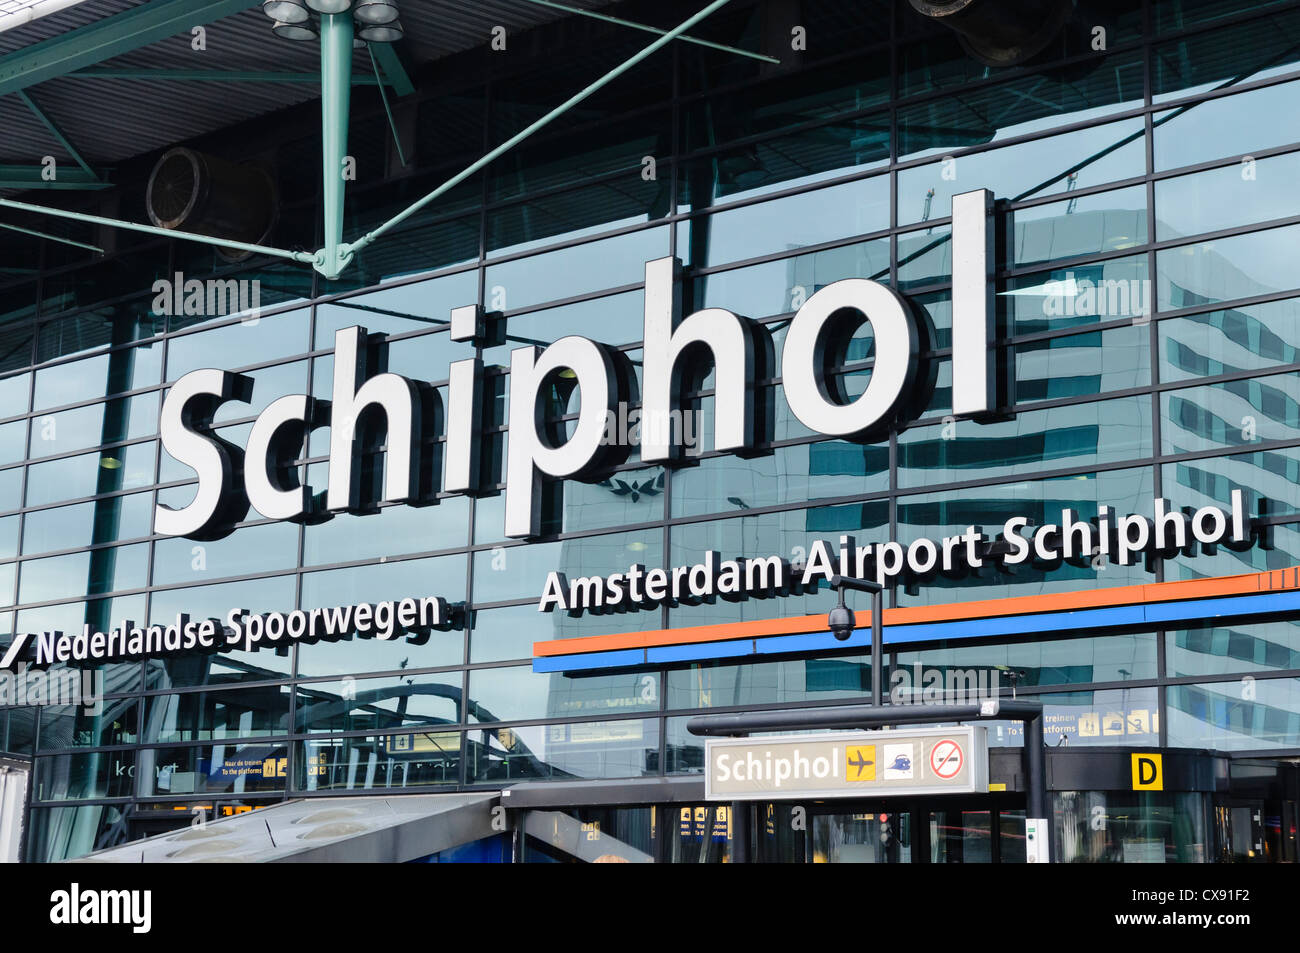 Main front entrance into Schiphol Airport, Amsterdam - Stock Image